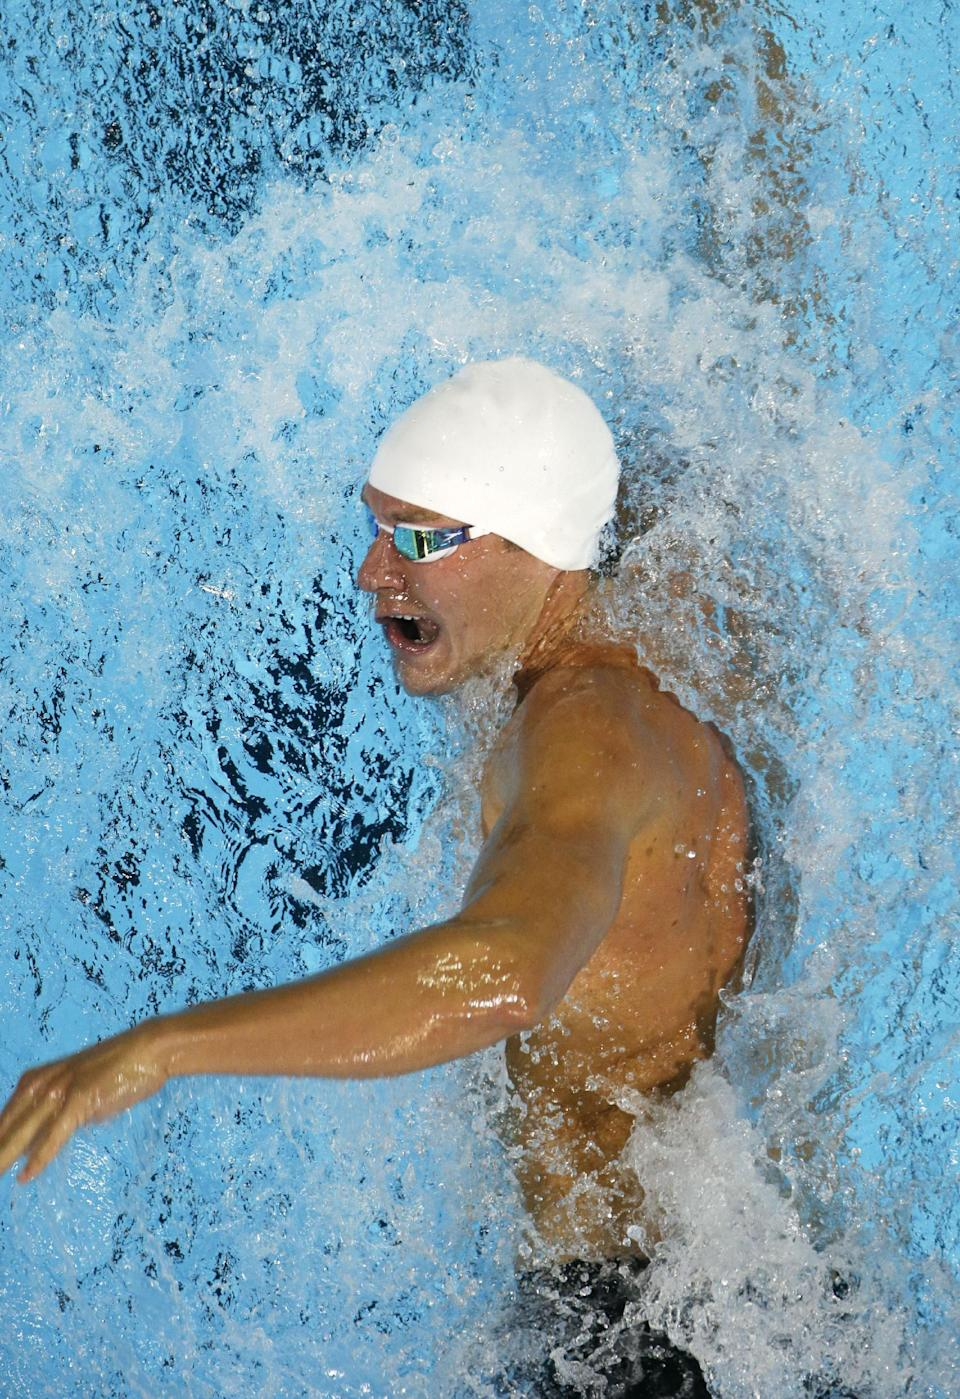 Peter Vanderkaay swims in the men's 200-meter freestyle preliminaries at the U.S. Olympic swimming trials, Tuesday, June 26, 2012, in Omaha, Neb. (AP Photo/Mark Humphrey)